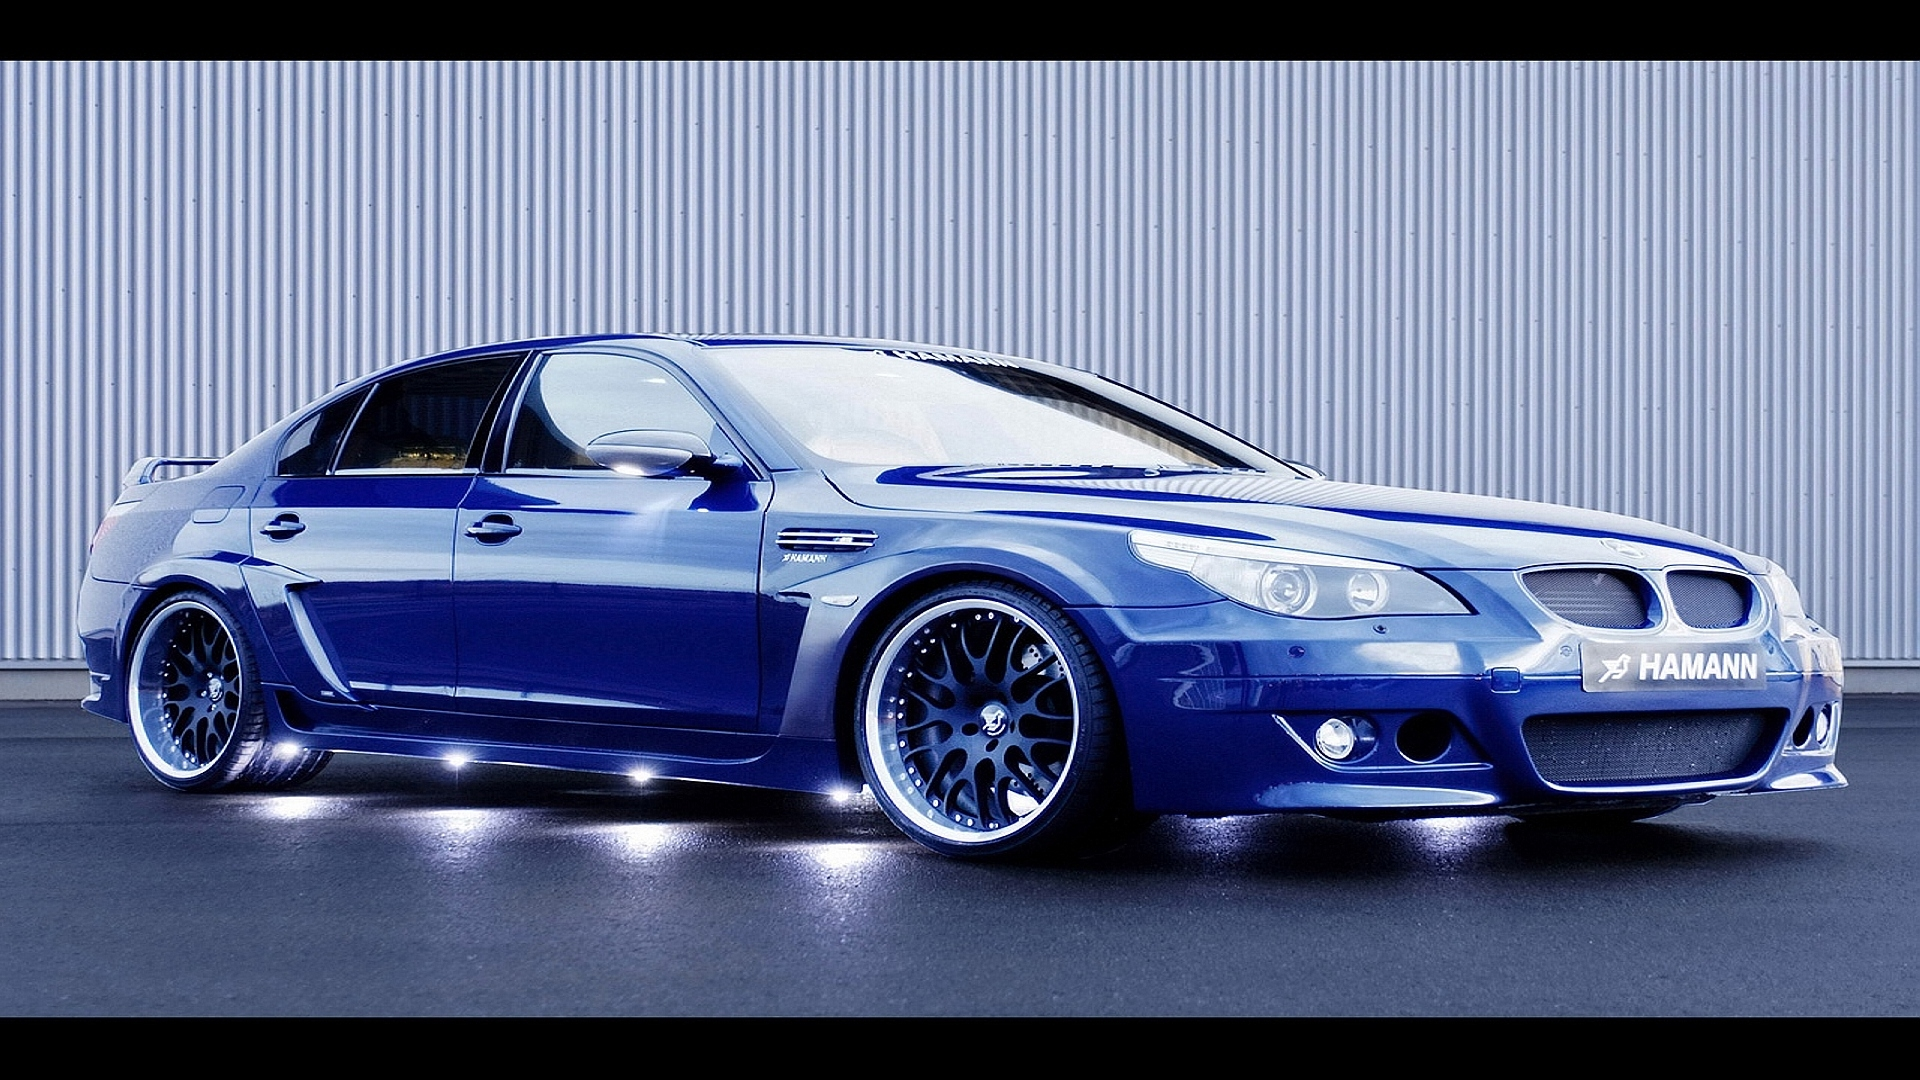 Ford car Exotic Blue Muscle Hamman BMW 11